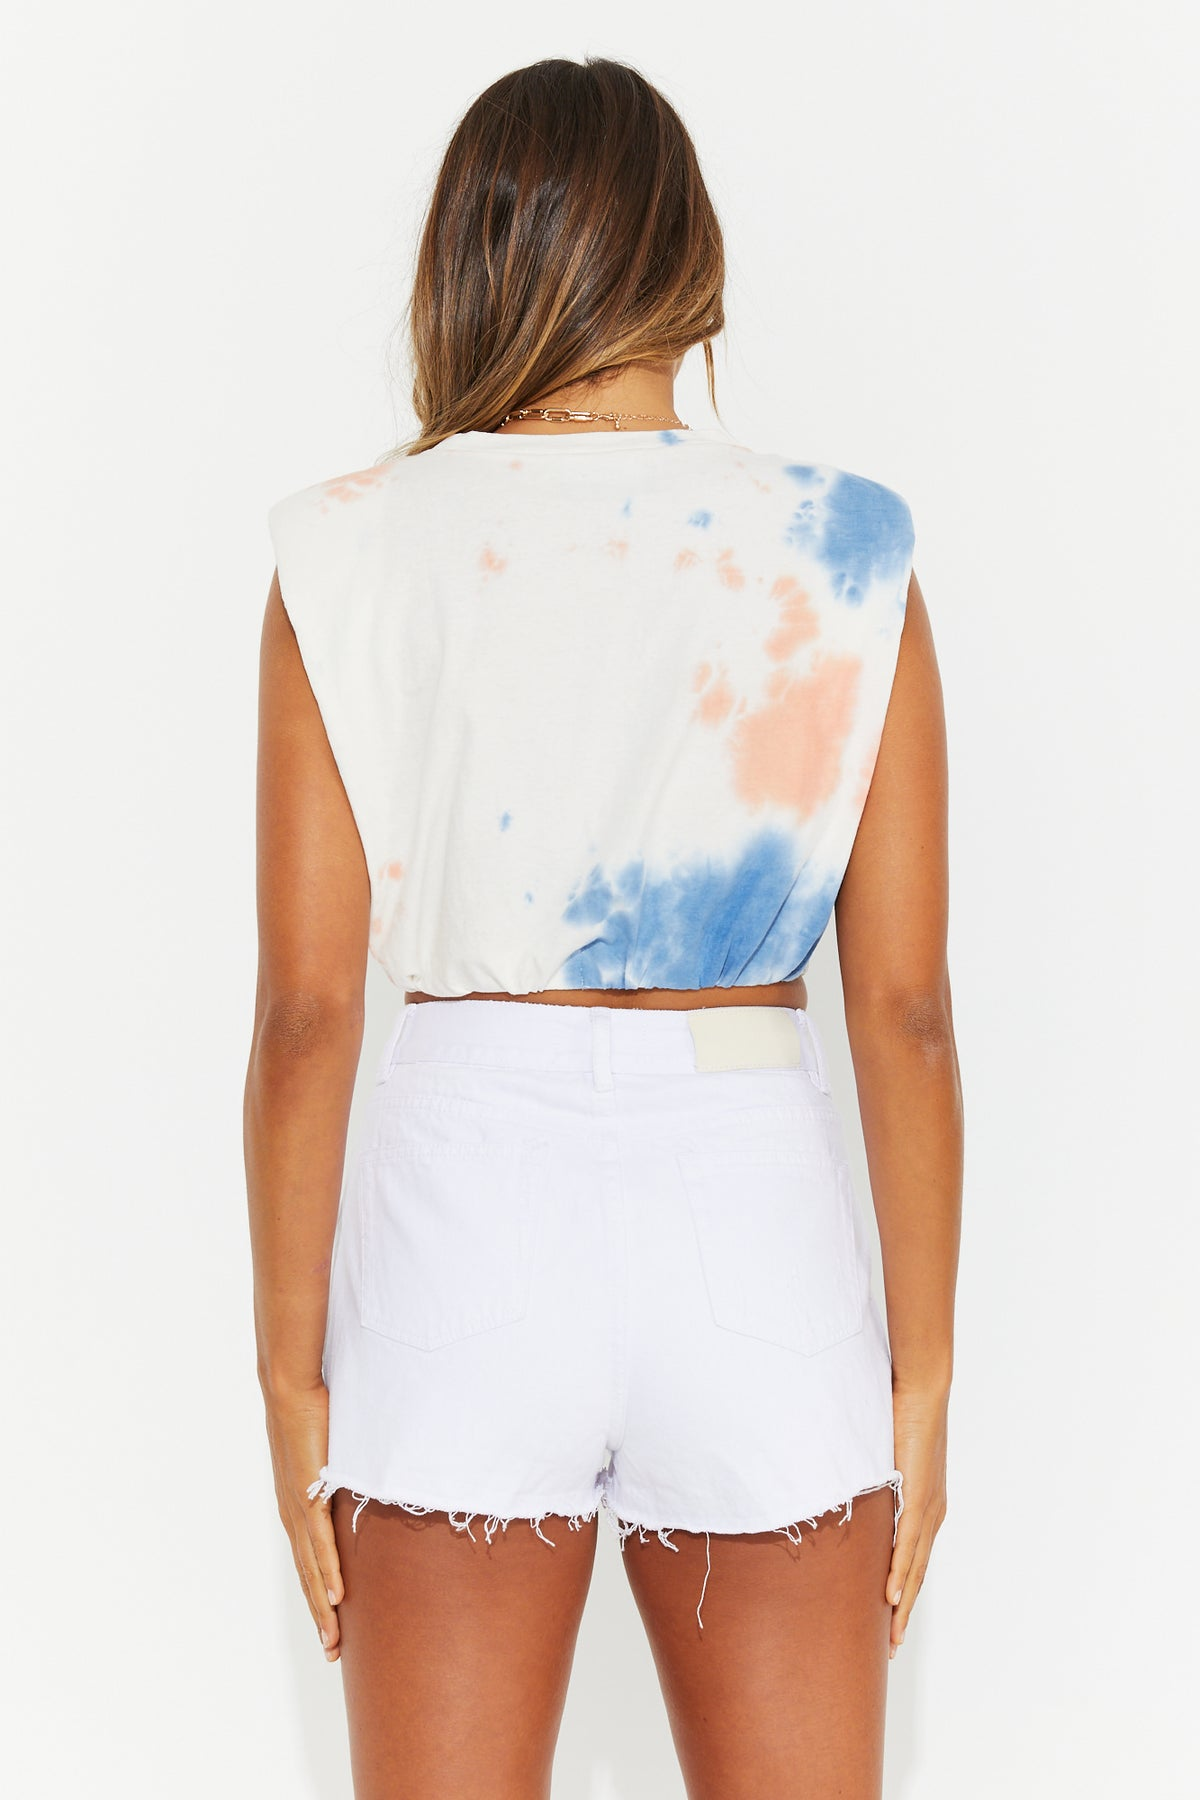 Katie Cropped Tank Orange Tie Dye